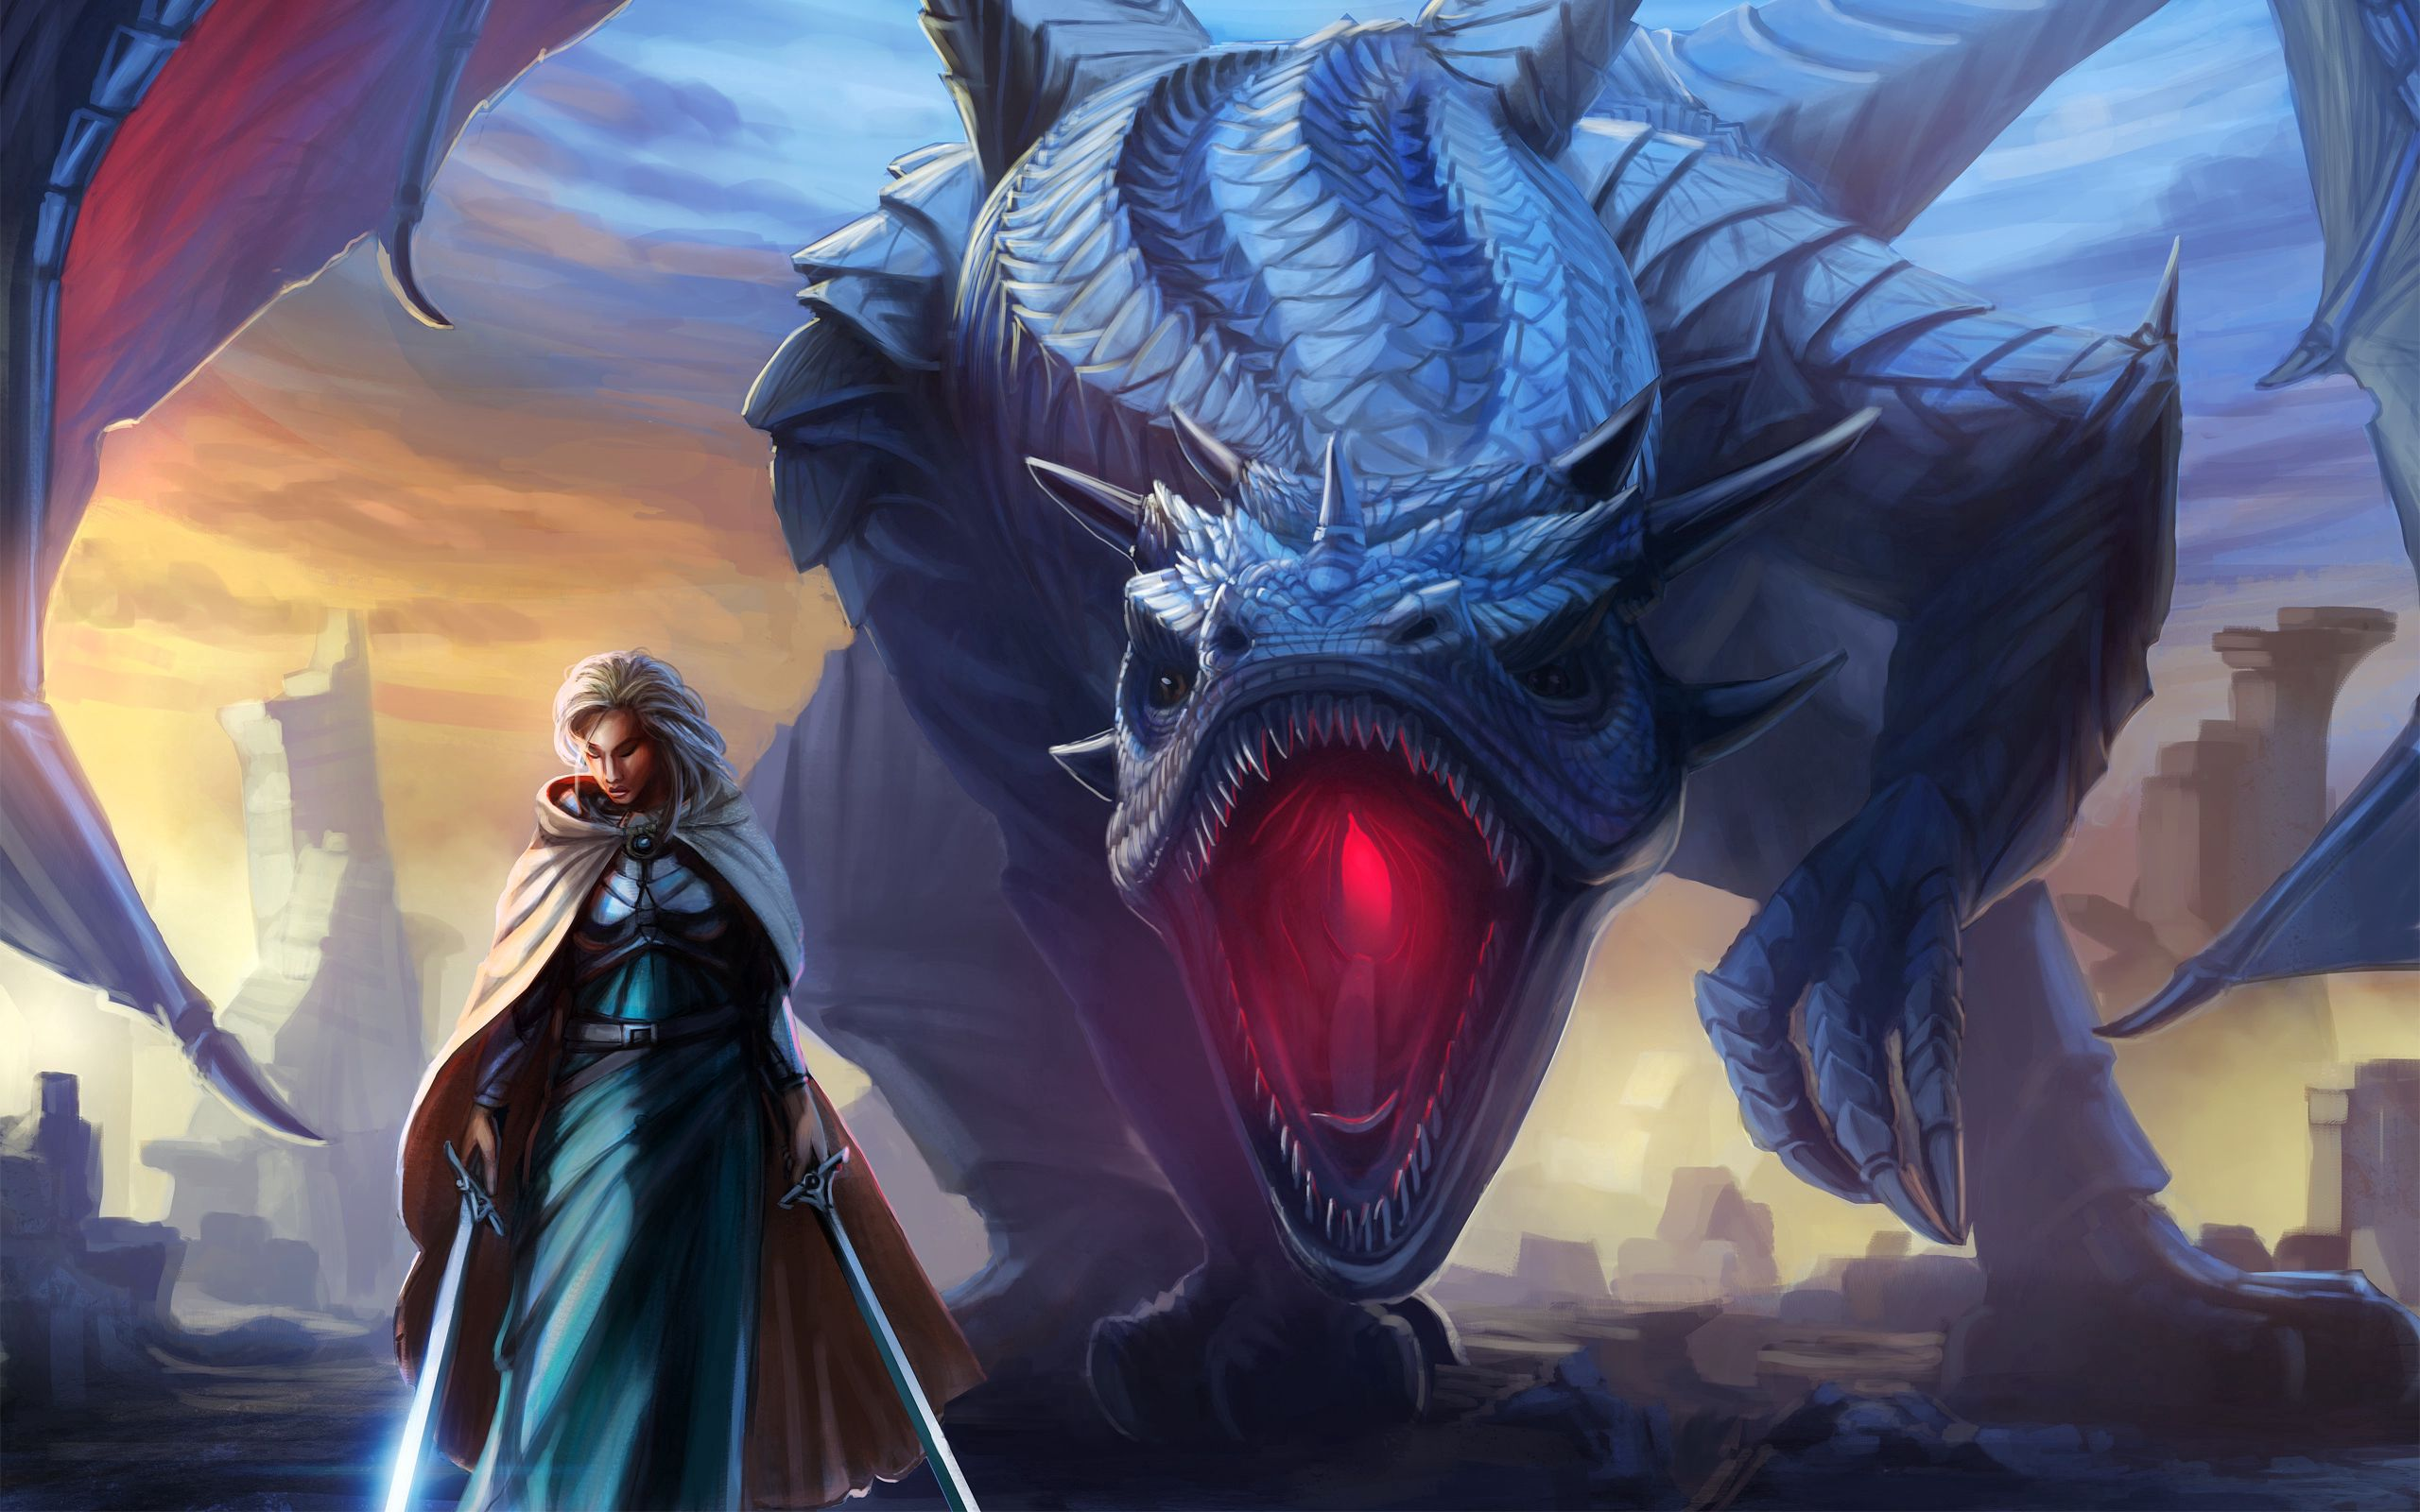 87694 download wallpaper Girl, Dragon, Fantasy, Sword, Wings, To Fall, Mouth, Cloak screensavers and pictures for free